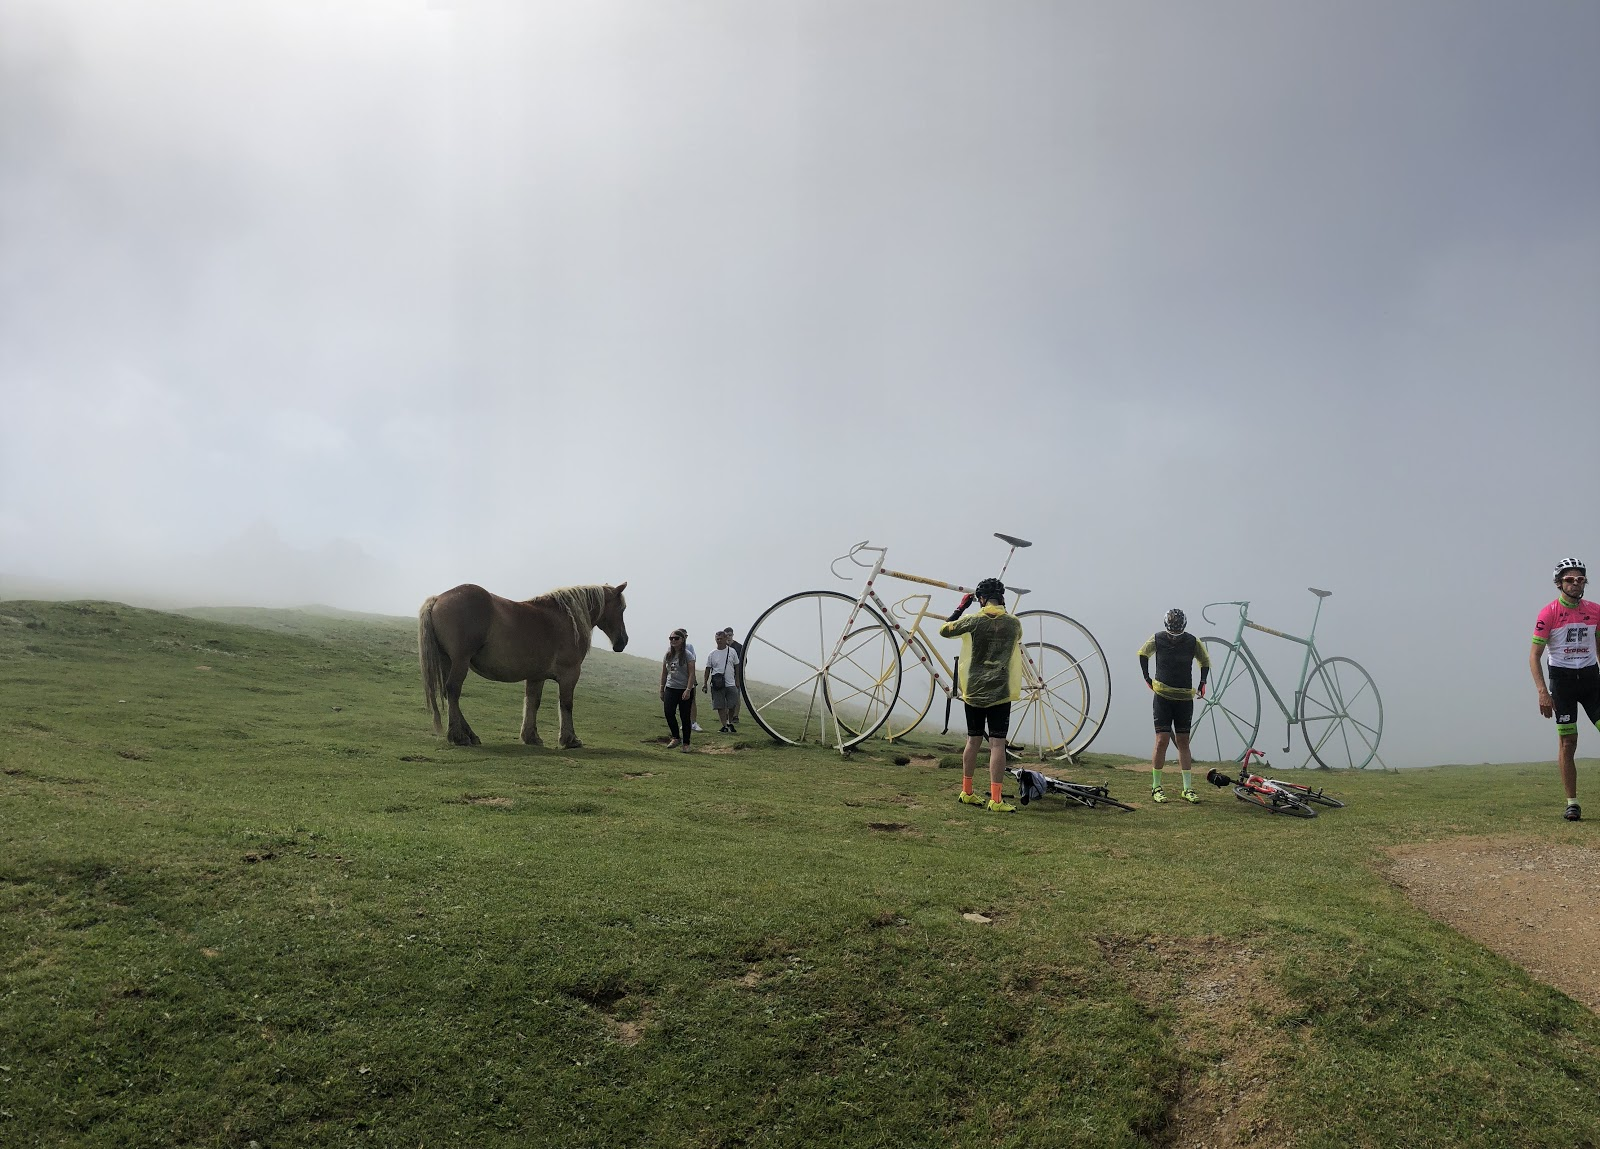 Bike ride Col d'Aubisque from Ferrières - giant bikes, horses and cyclists at top of col